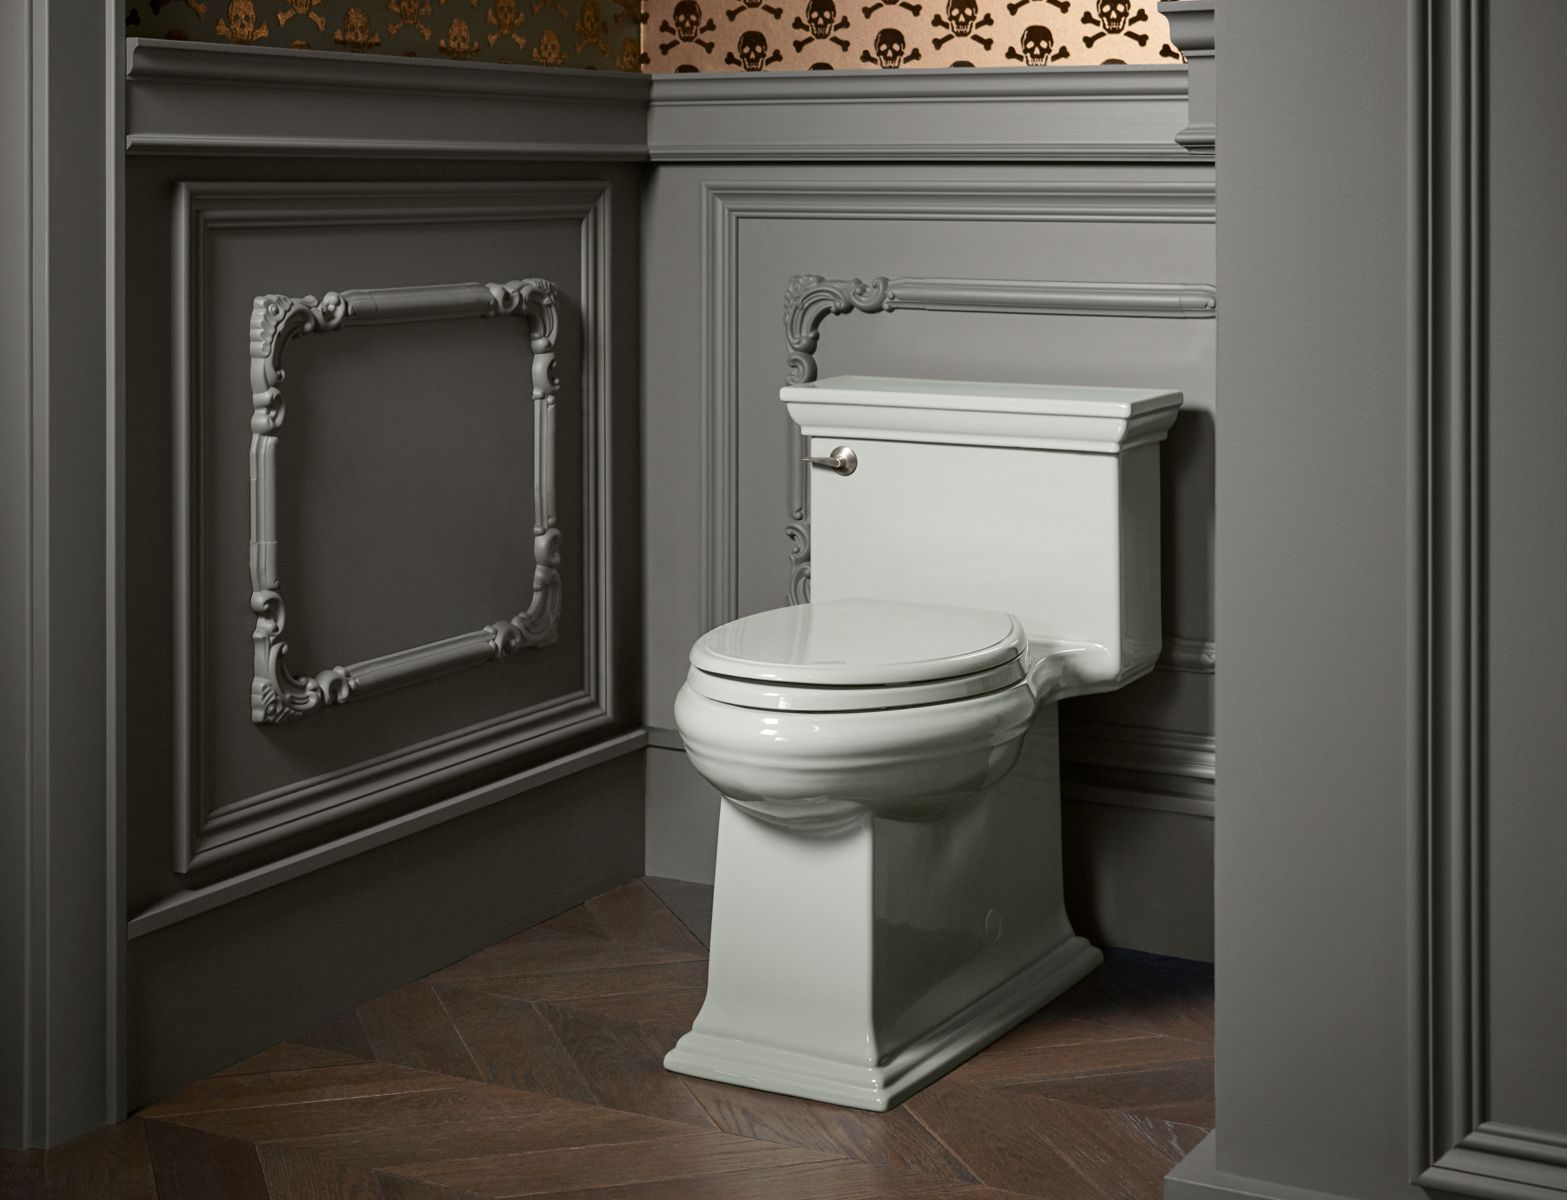 Memoirs Toilet By Kohler Kohler K Lowes Bathroom Toilets Home Design Of The Year Discount